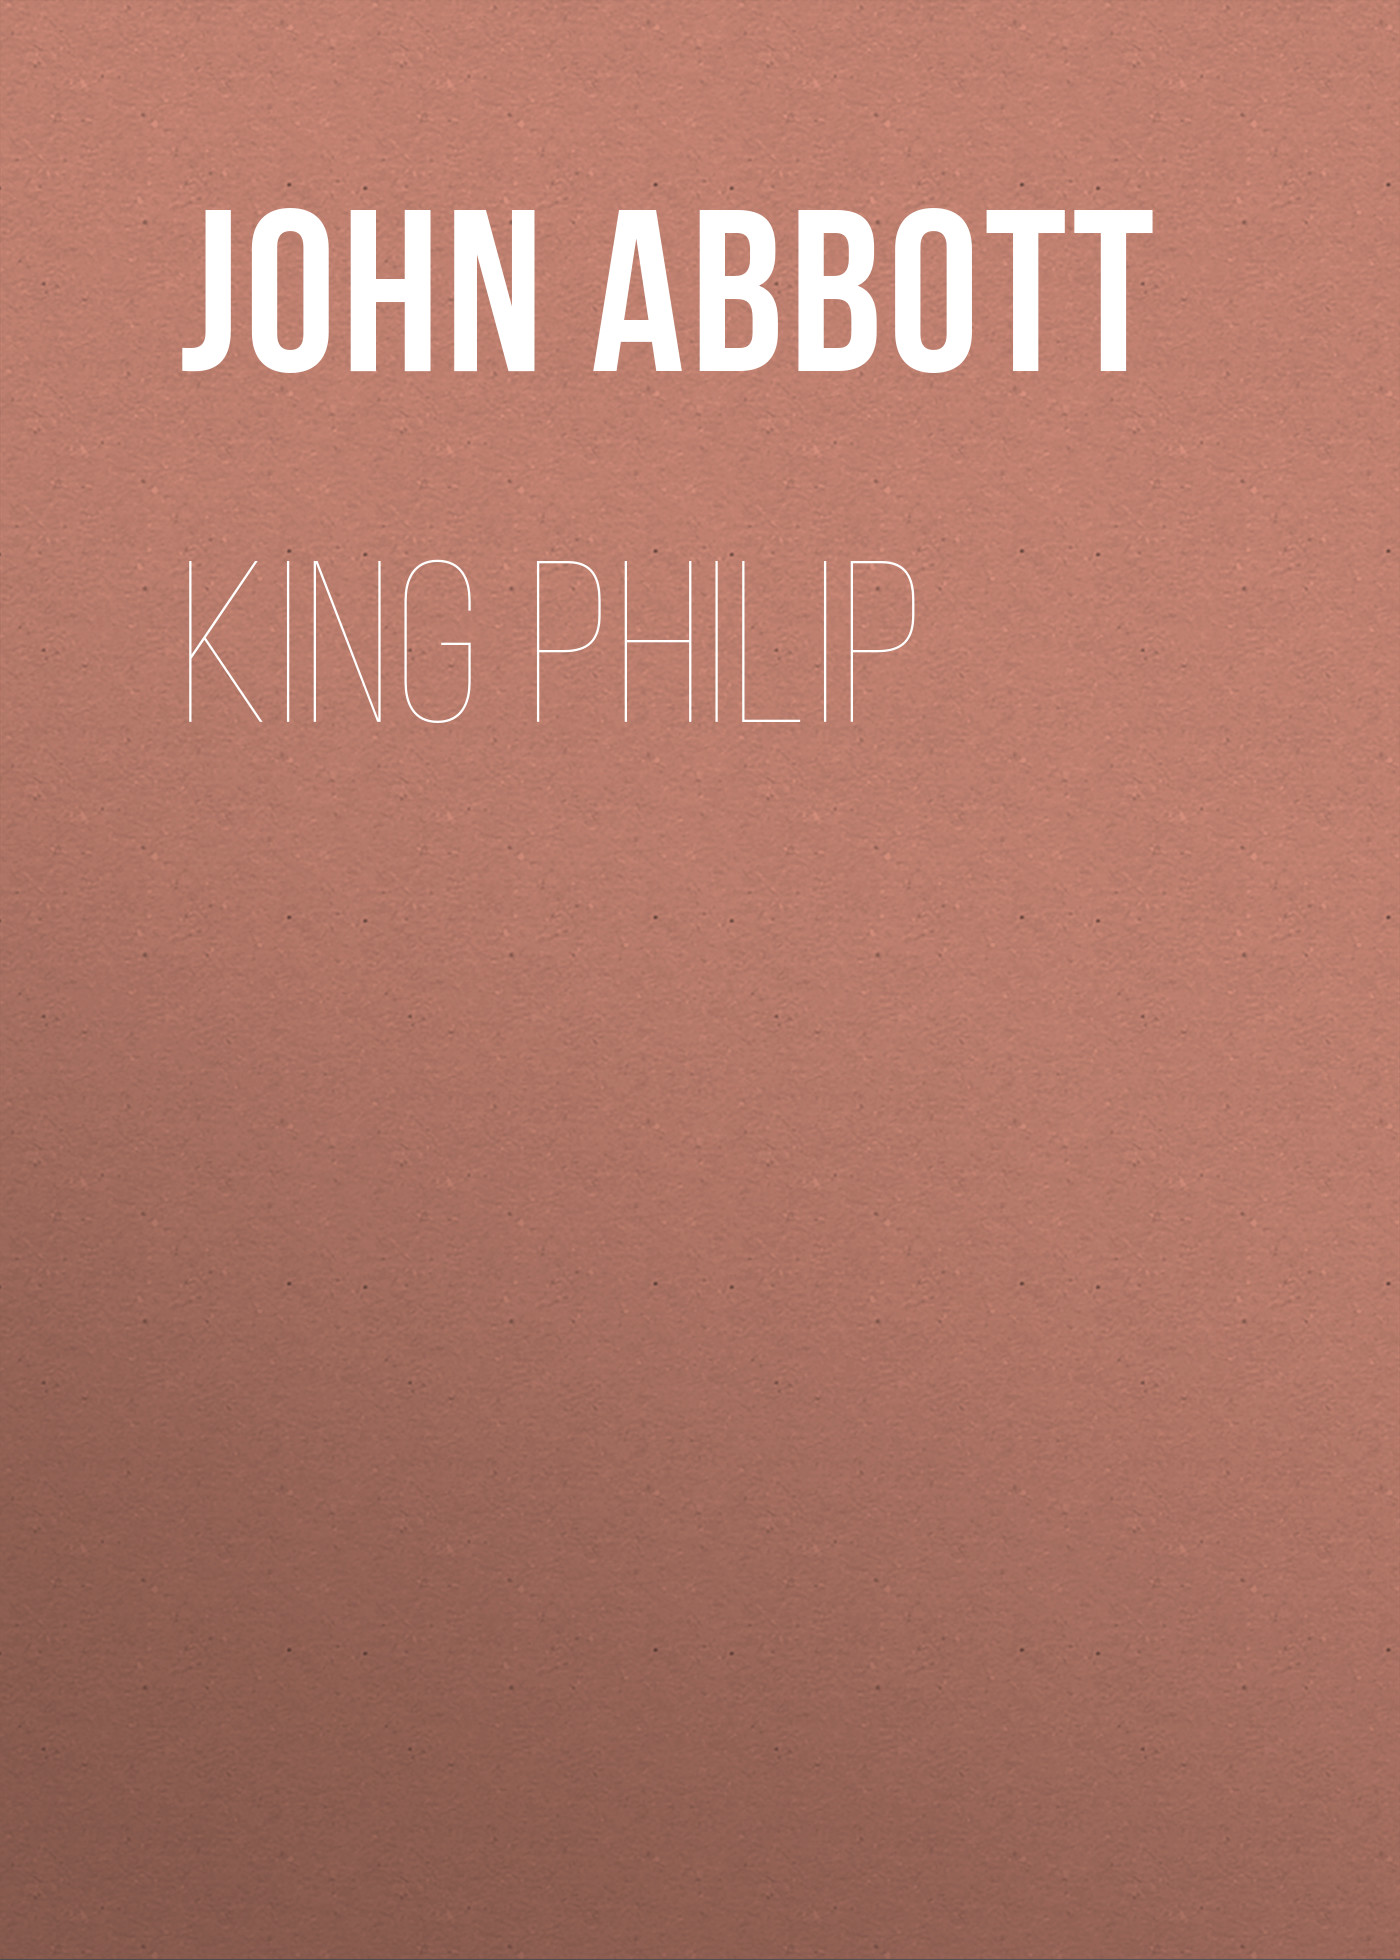 Фото - Abbott John Stevens Cabot King Philip cabot arthur tracy papers upon abdominal surgery